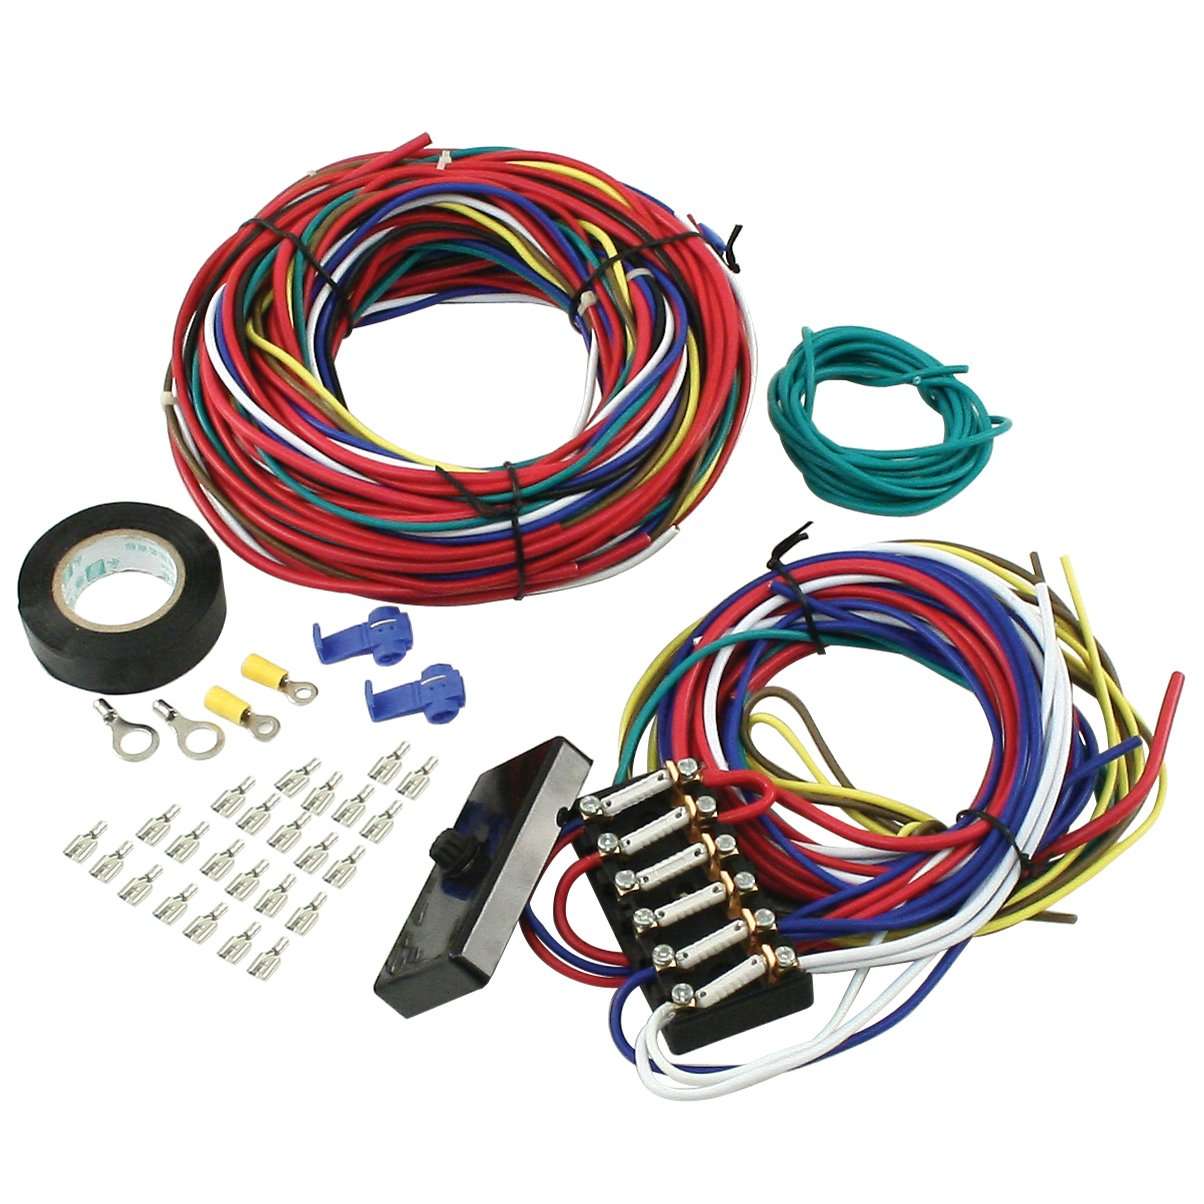 712Fyt3MSiL._SL1204_ amazon com empi 00 9466 0 wire loom kit, vw buggy, sand rail VW Wiring Harness Kits at gsmx.co